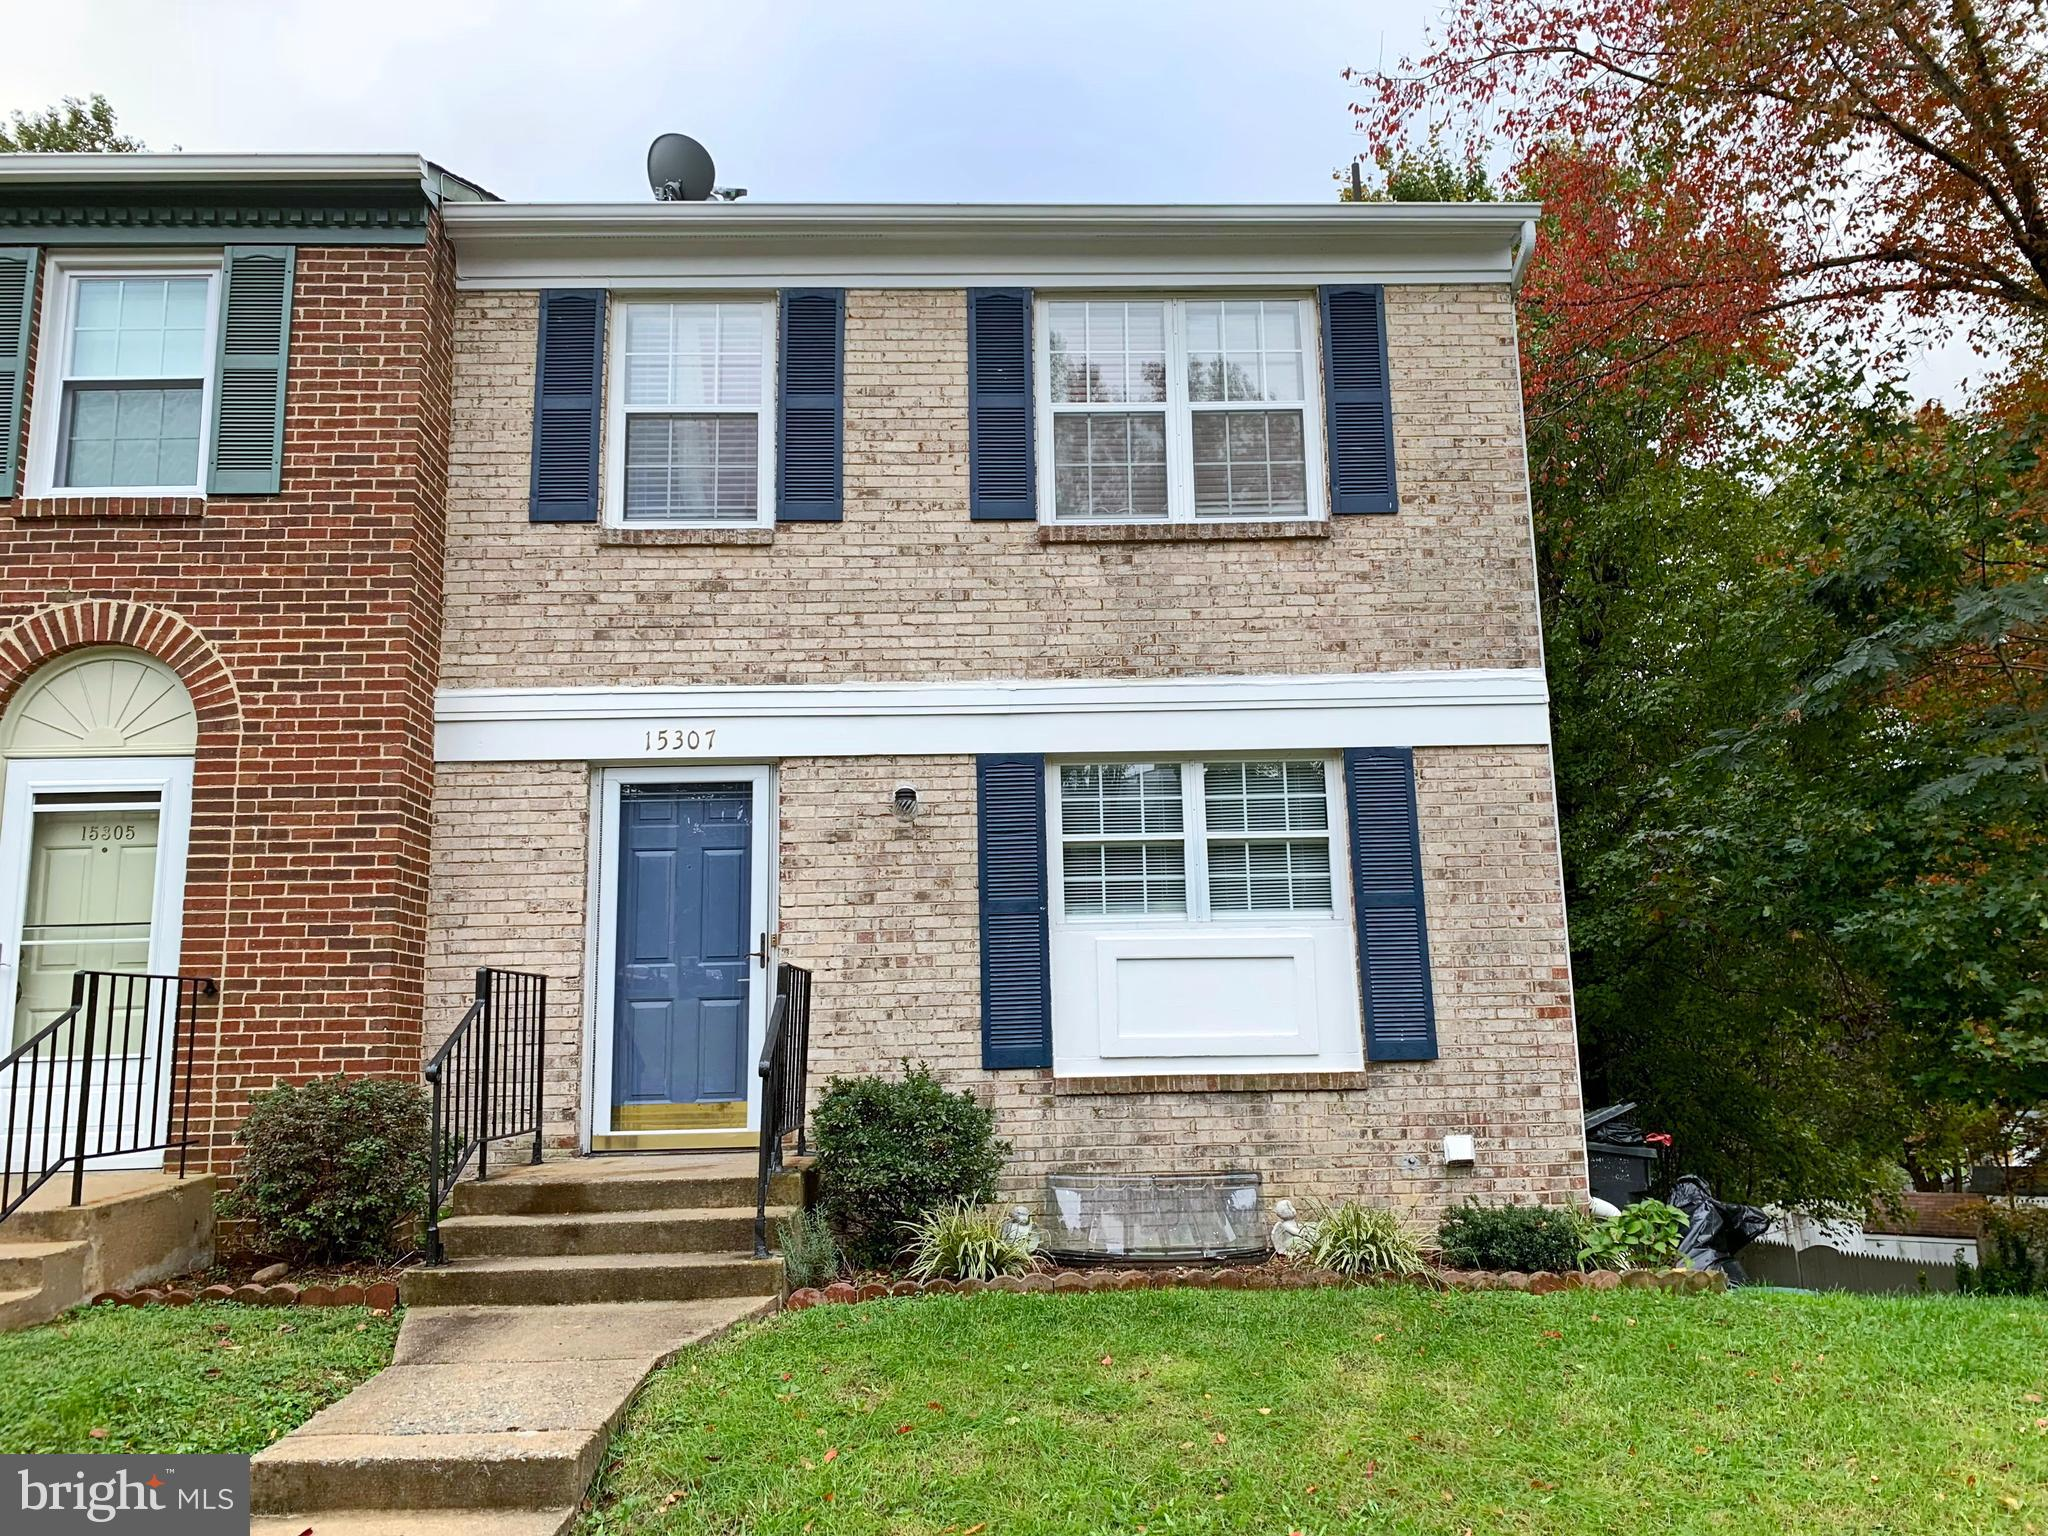 Beautifully maintained, bright and inviting Two-story + basement end unit townhouse in desirable community. Only minutes from Stonebridge at Potomac Town Center. Lots of shopping , dining areas nearby with access to the community pool and off street parking. The main level showcases the family room with gorgeous hardwood floors, dining area, a partial renovated kitchen updated cabinets, and Granite countertops. On the upper level you will find three bedrooms and two full bathrooms. The basement level has spacious laundry rm, bathroom with stand up shower, Large rec room w/ walkout basement & patio overlooking wooded area.